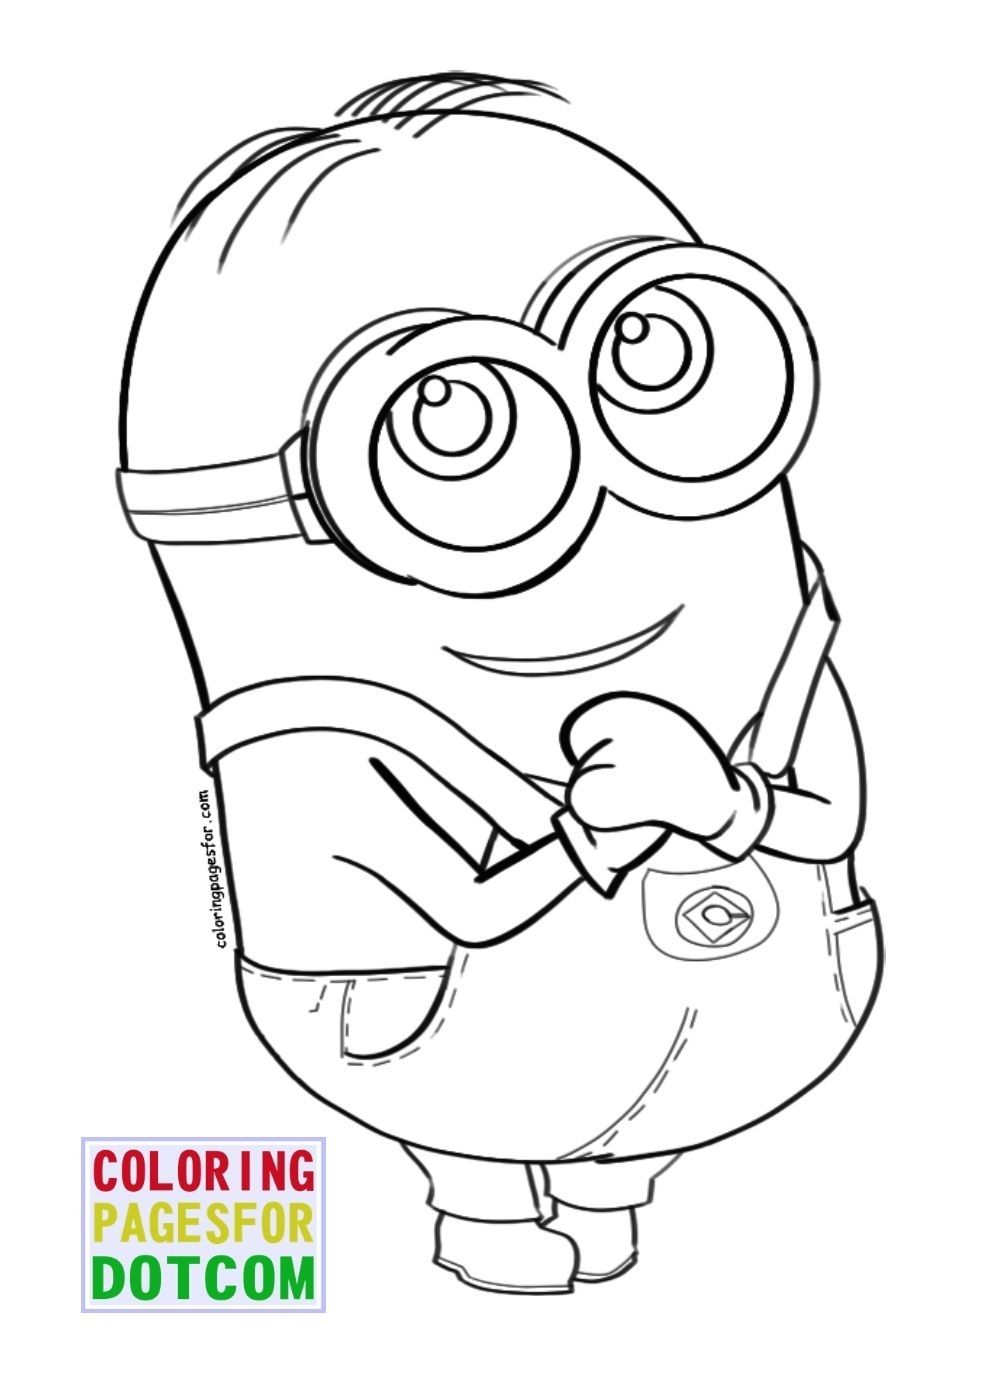 Minion Coloring Pictures To Print Minion Coloring Page Printable Minion Coloring Picture Minion Coloring Pages Minions Coloring Pages Coloring Pages To Print